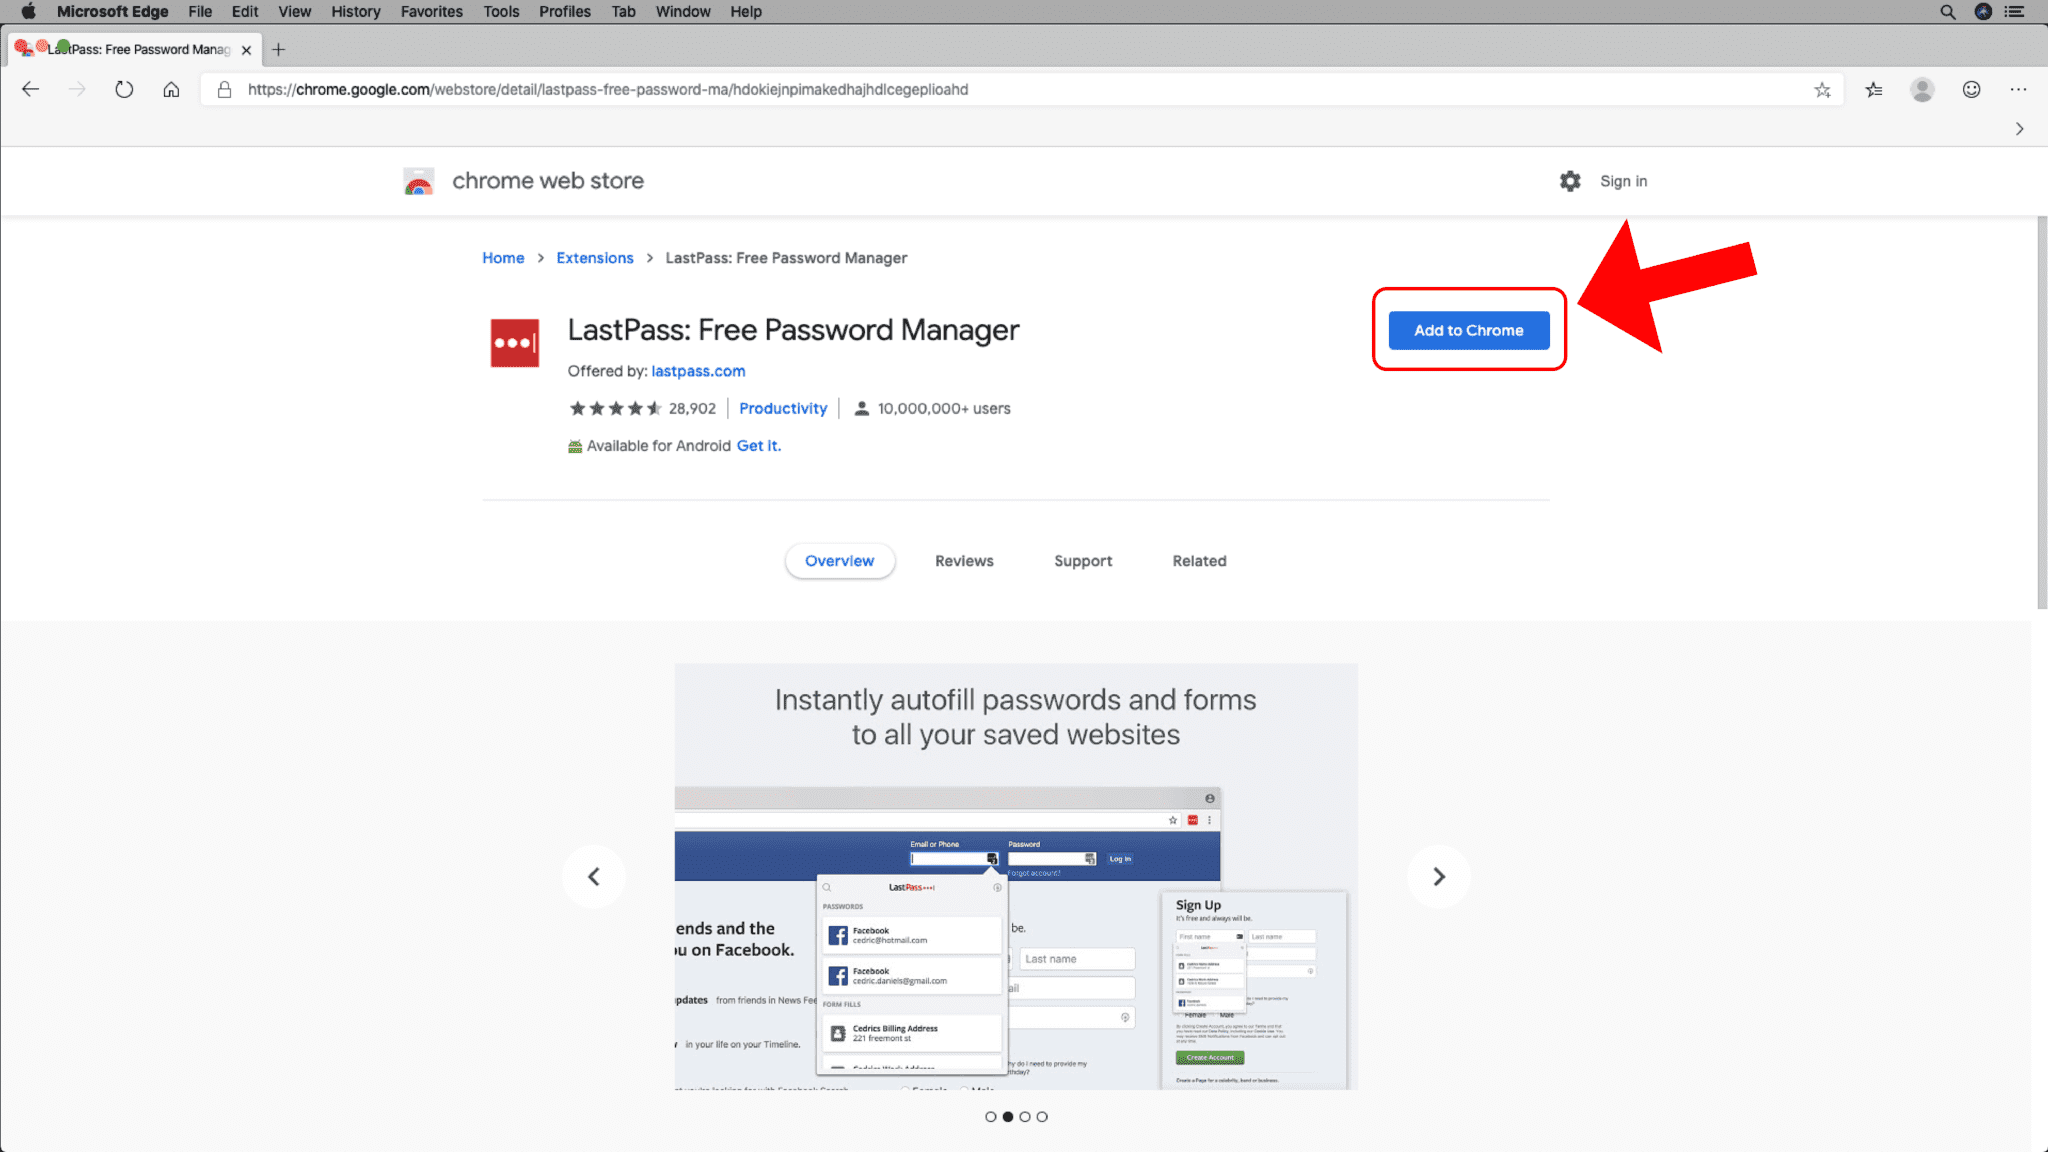 Add Chrome Extensions - Step 4